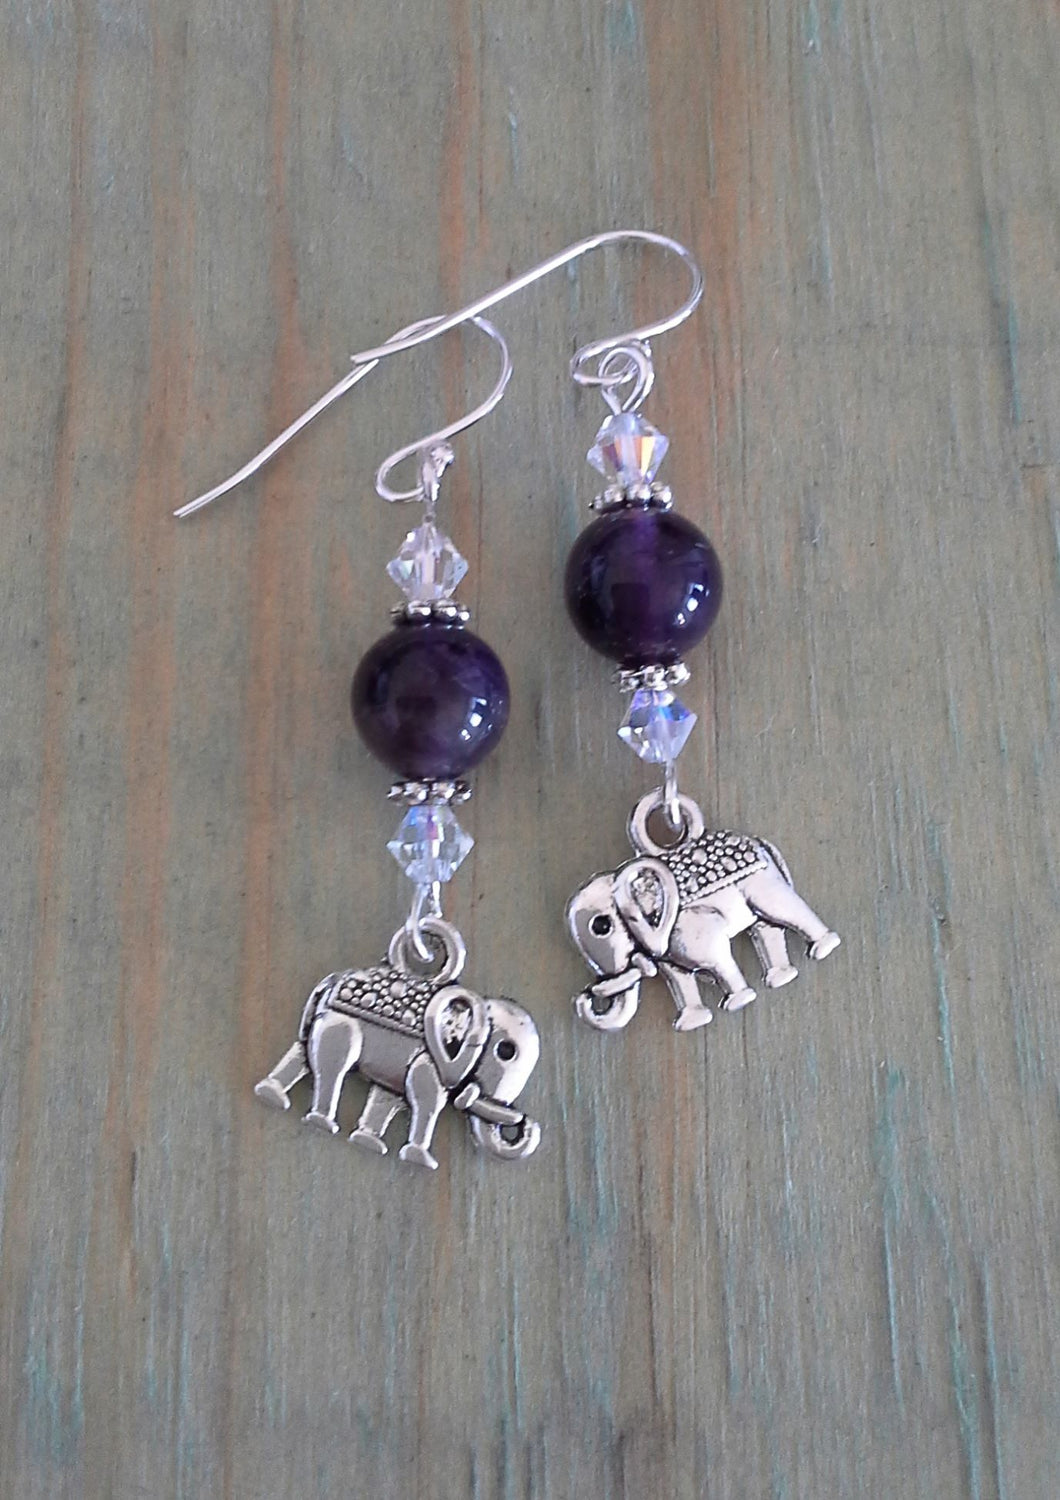 Elephant Dangle Earrings - Amethyst with clear AB Swarovski crystals